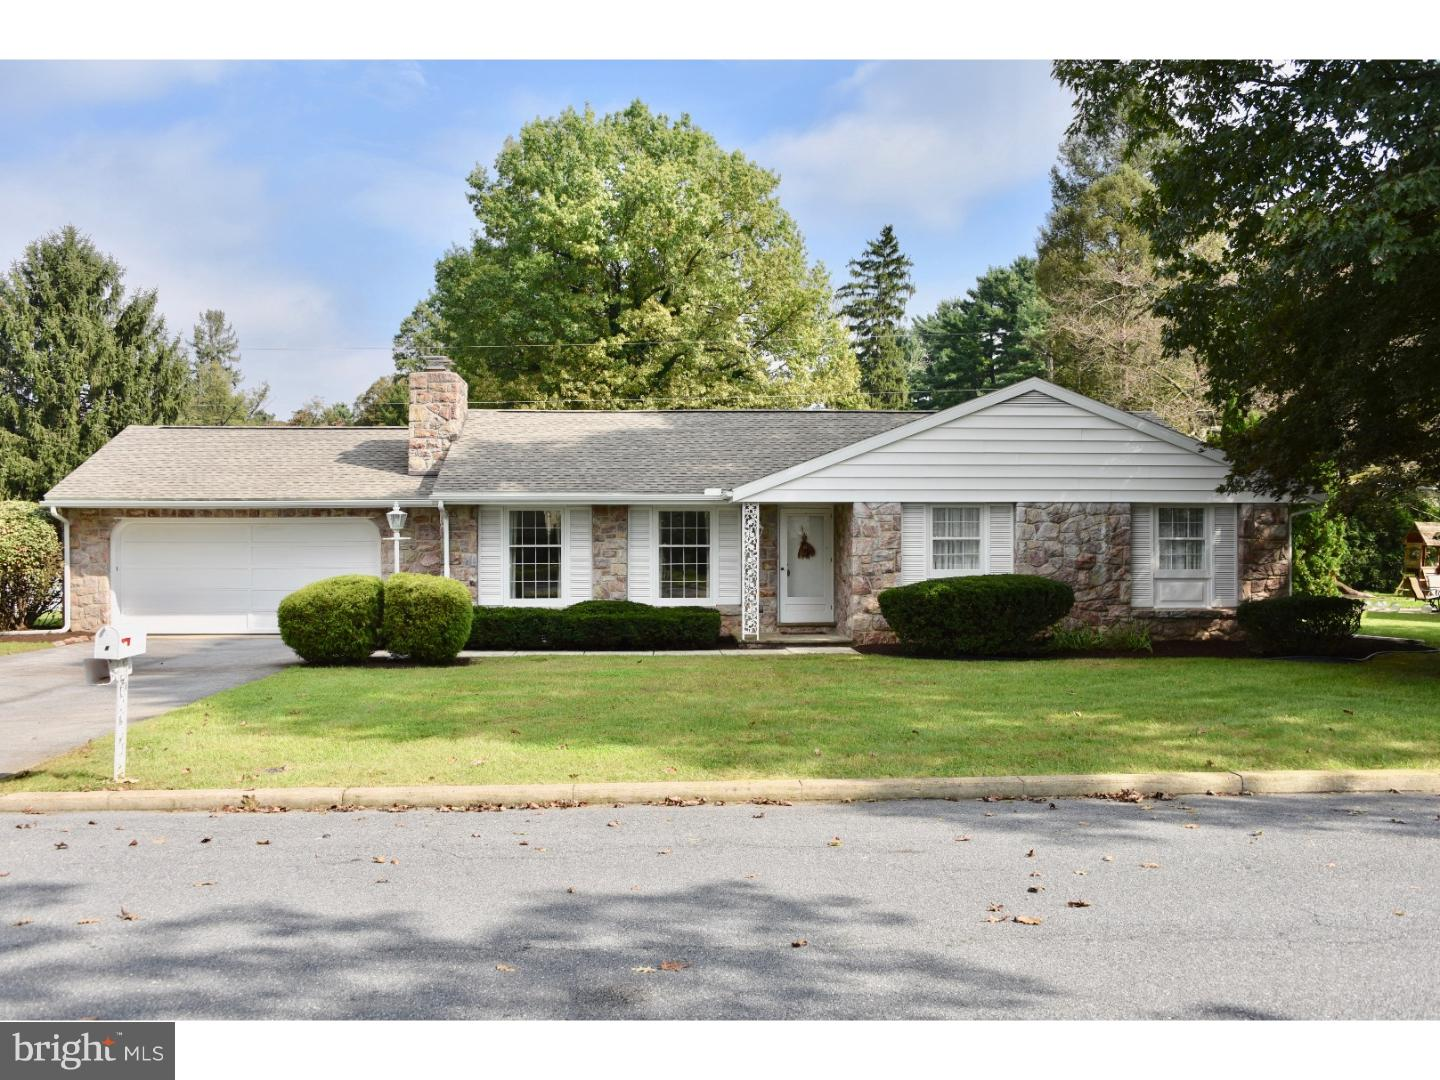 8 WENDY ROAD, READING, PA 19601